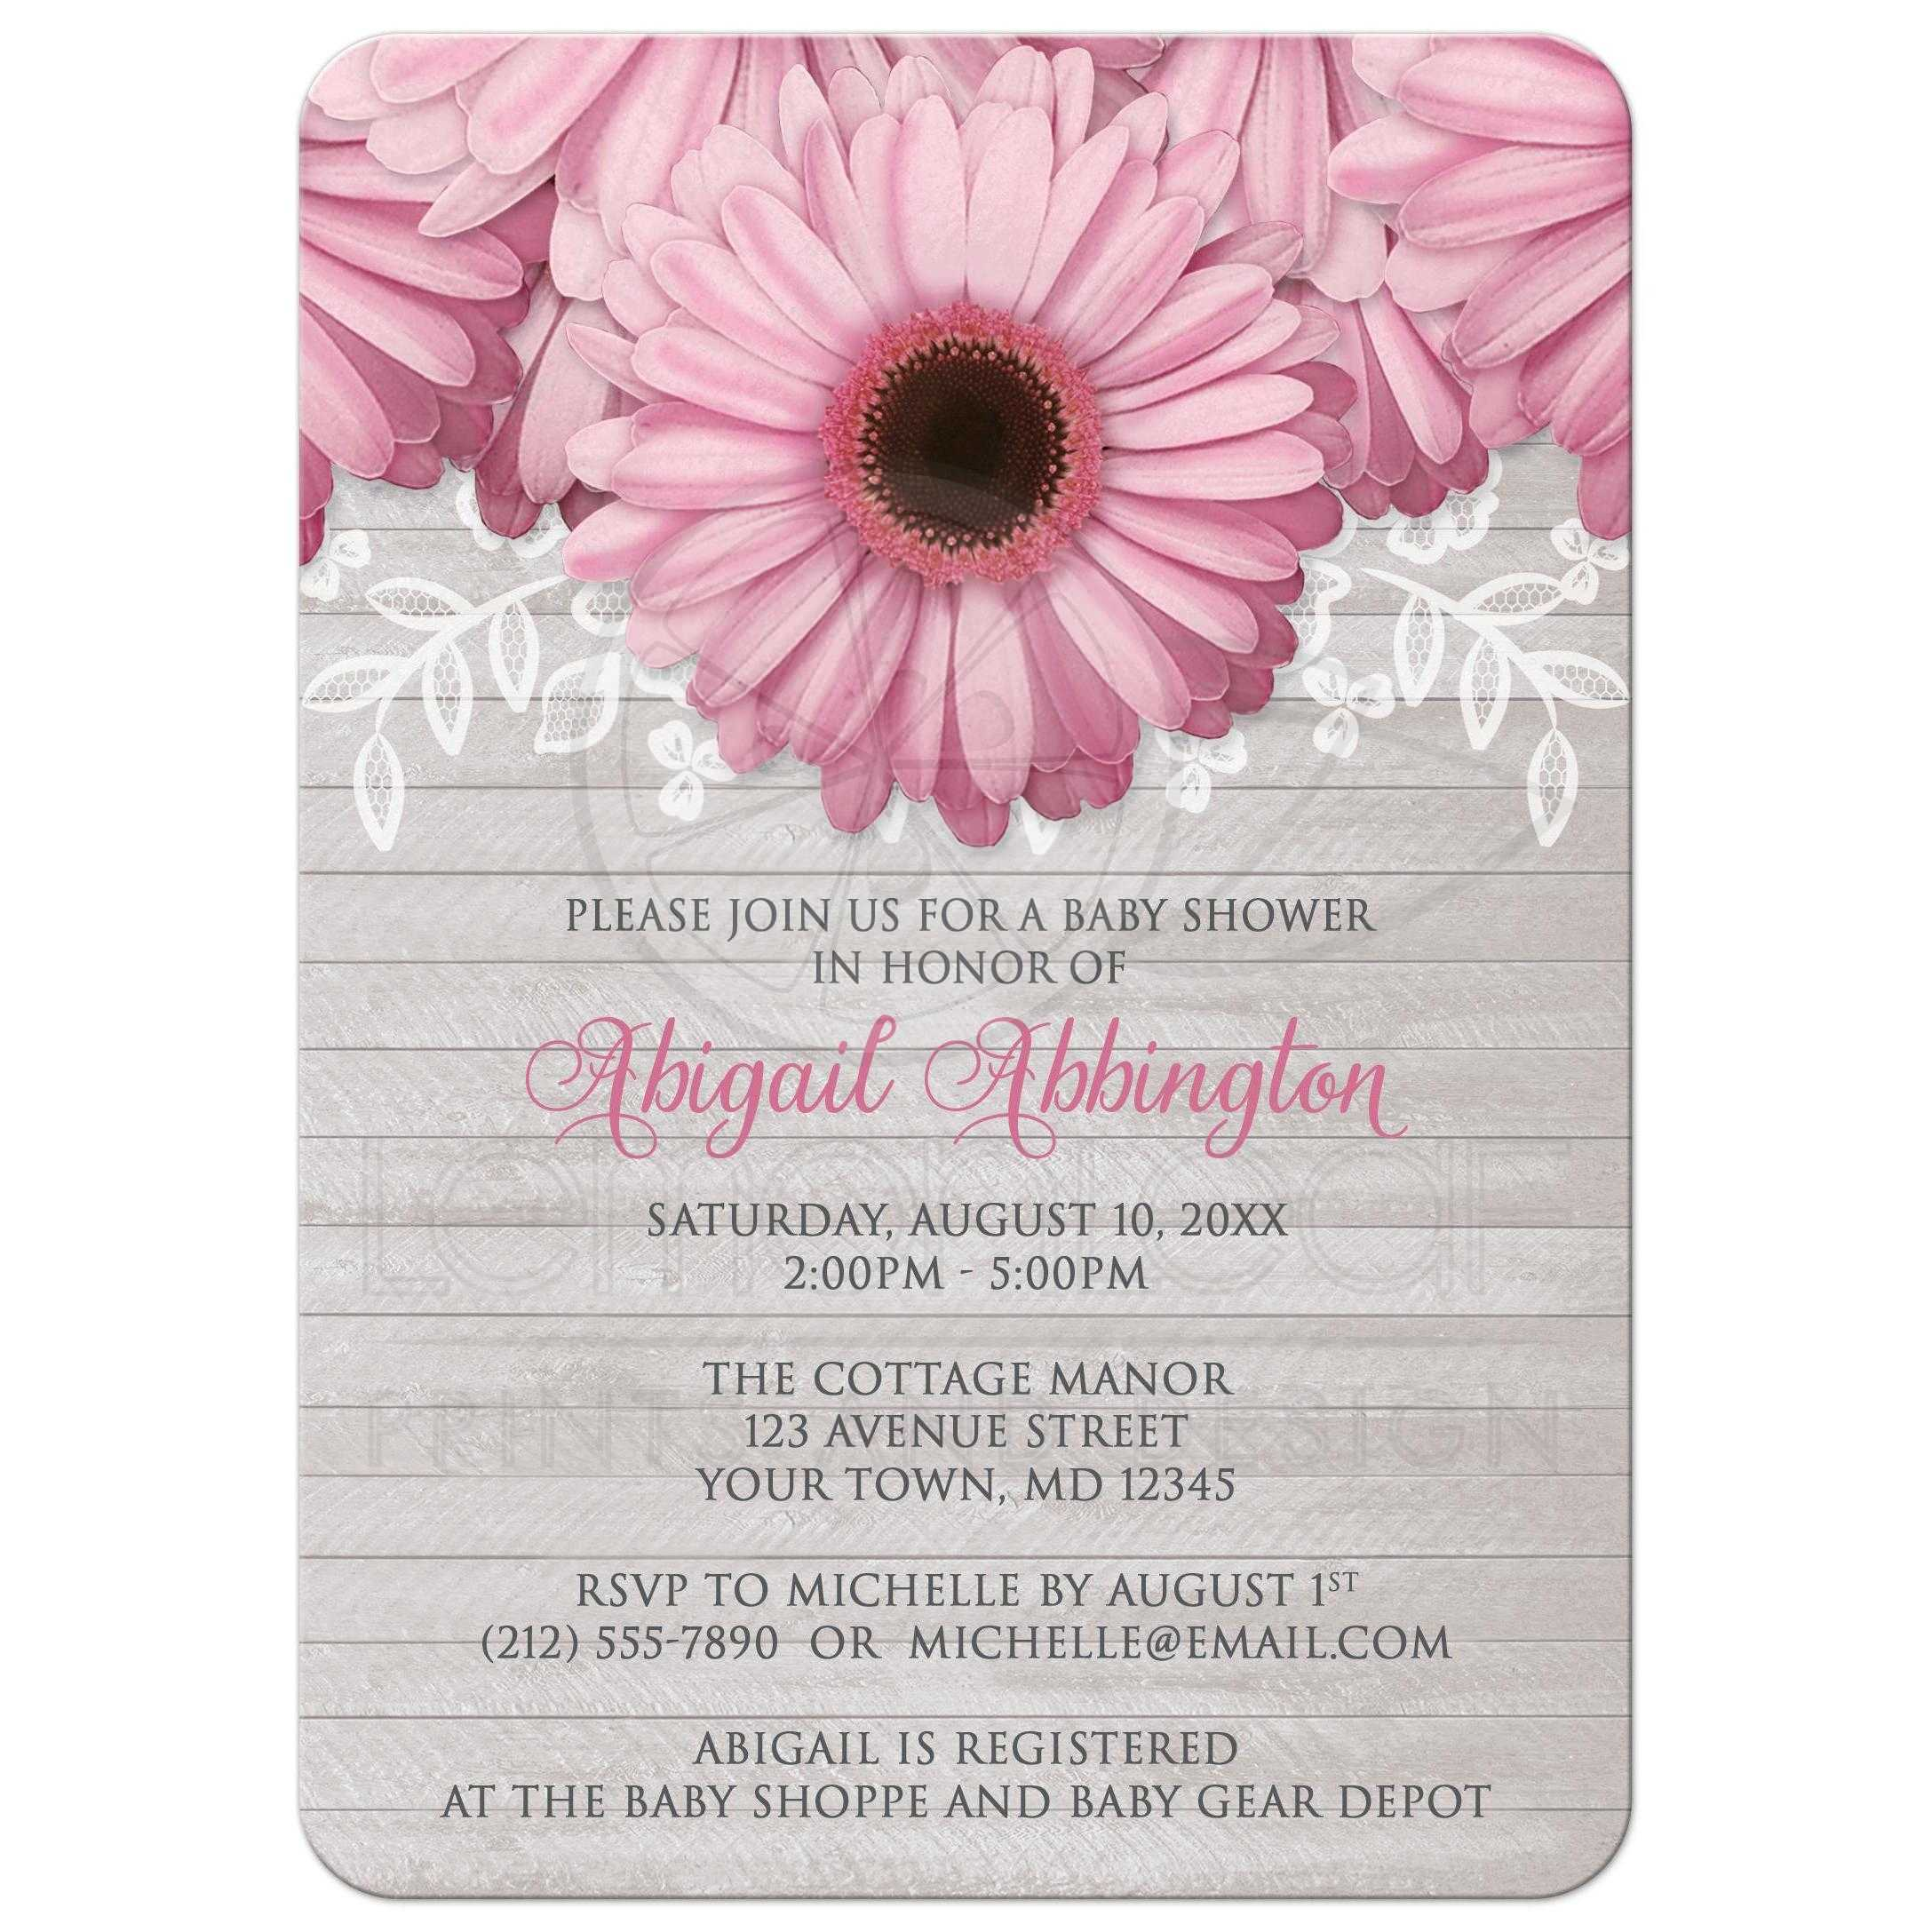 Baby shower invitations rustic pink daisy wood gray filmwisefo